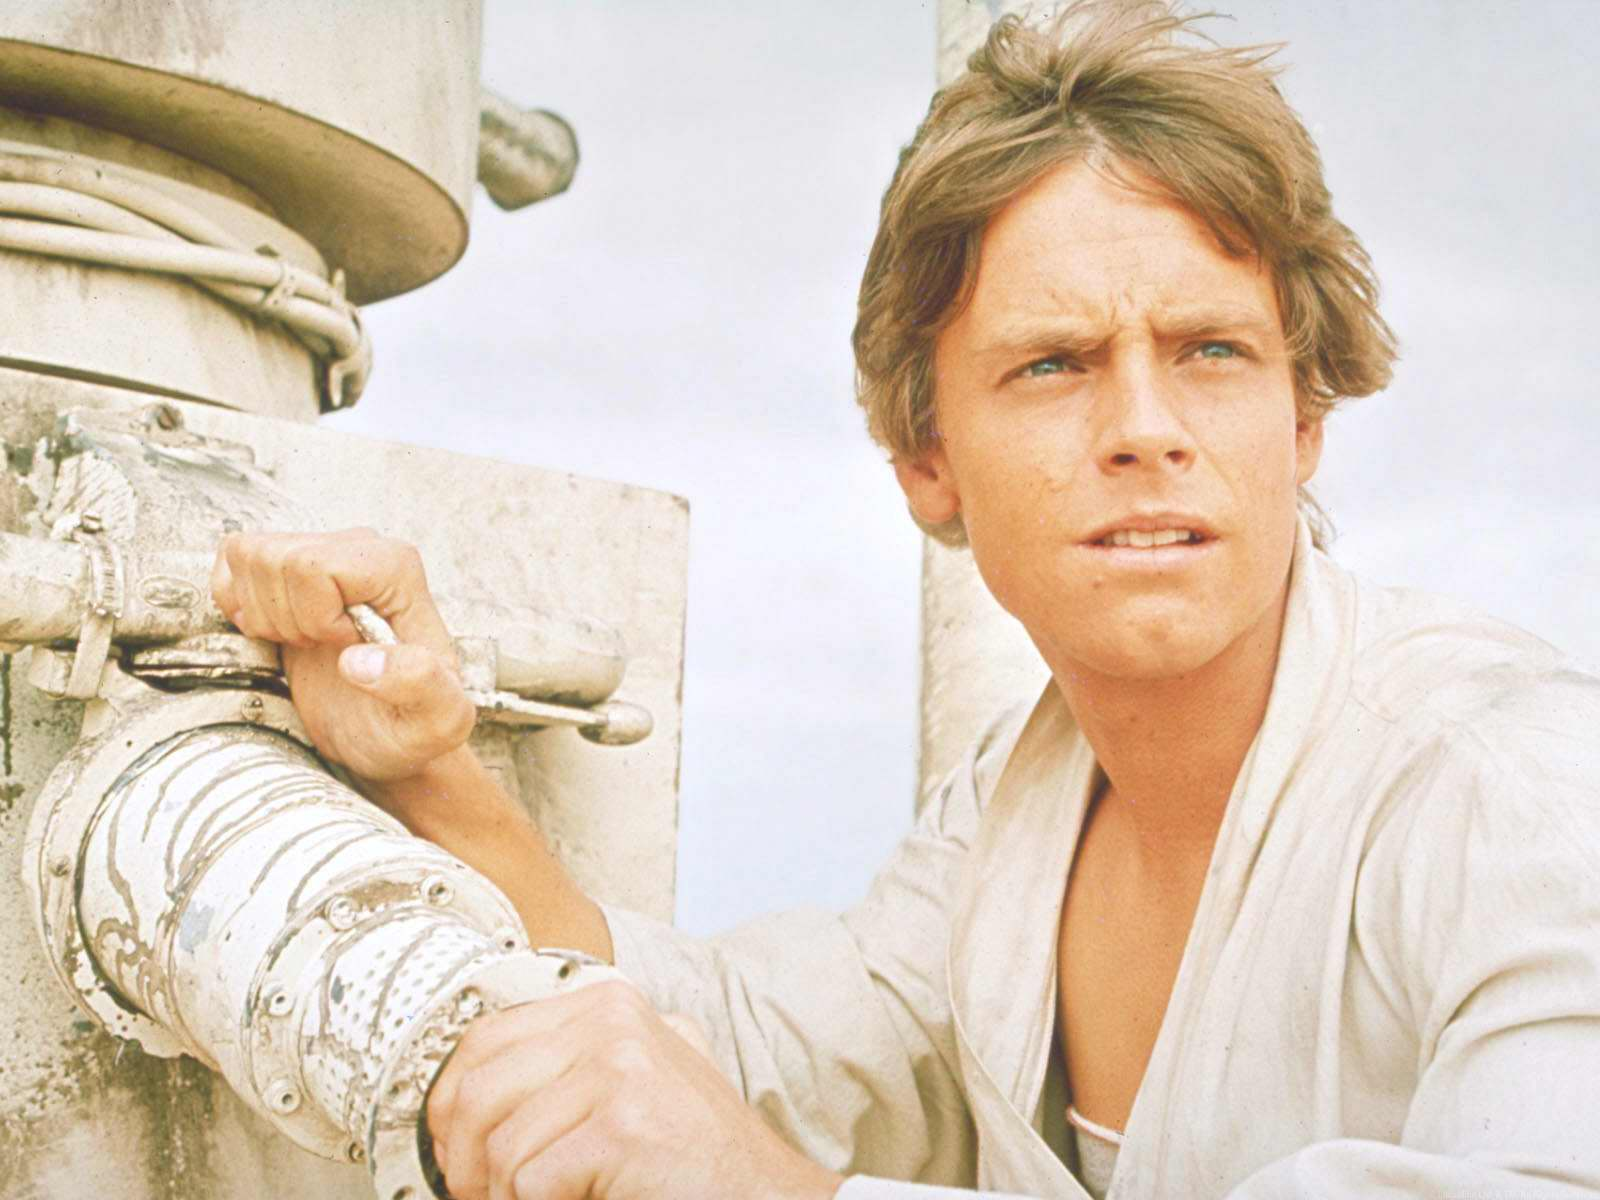 Mark Hamill Wallpapers High Resolution and Quality Download 1600x1200